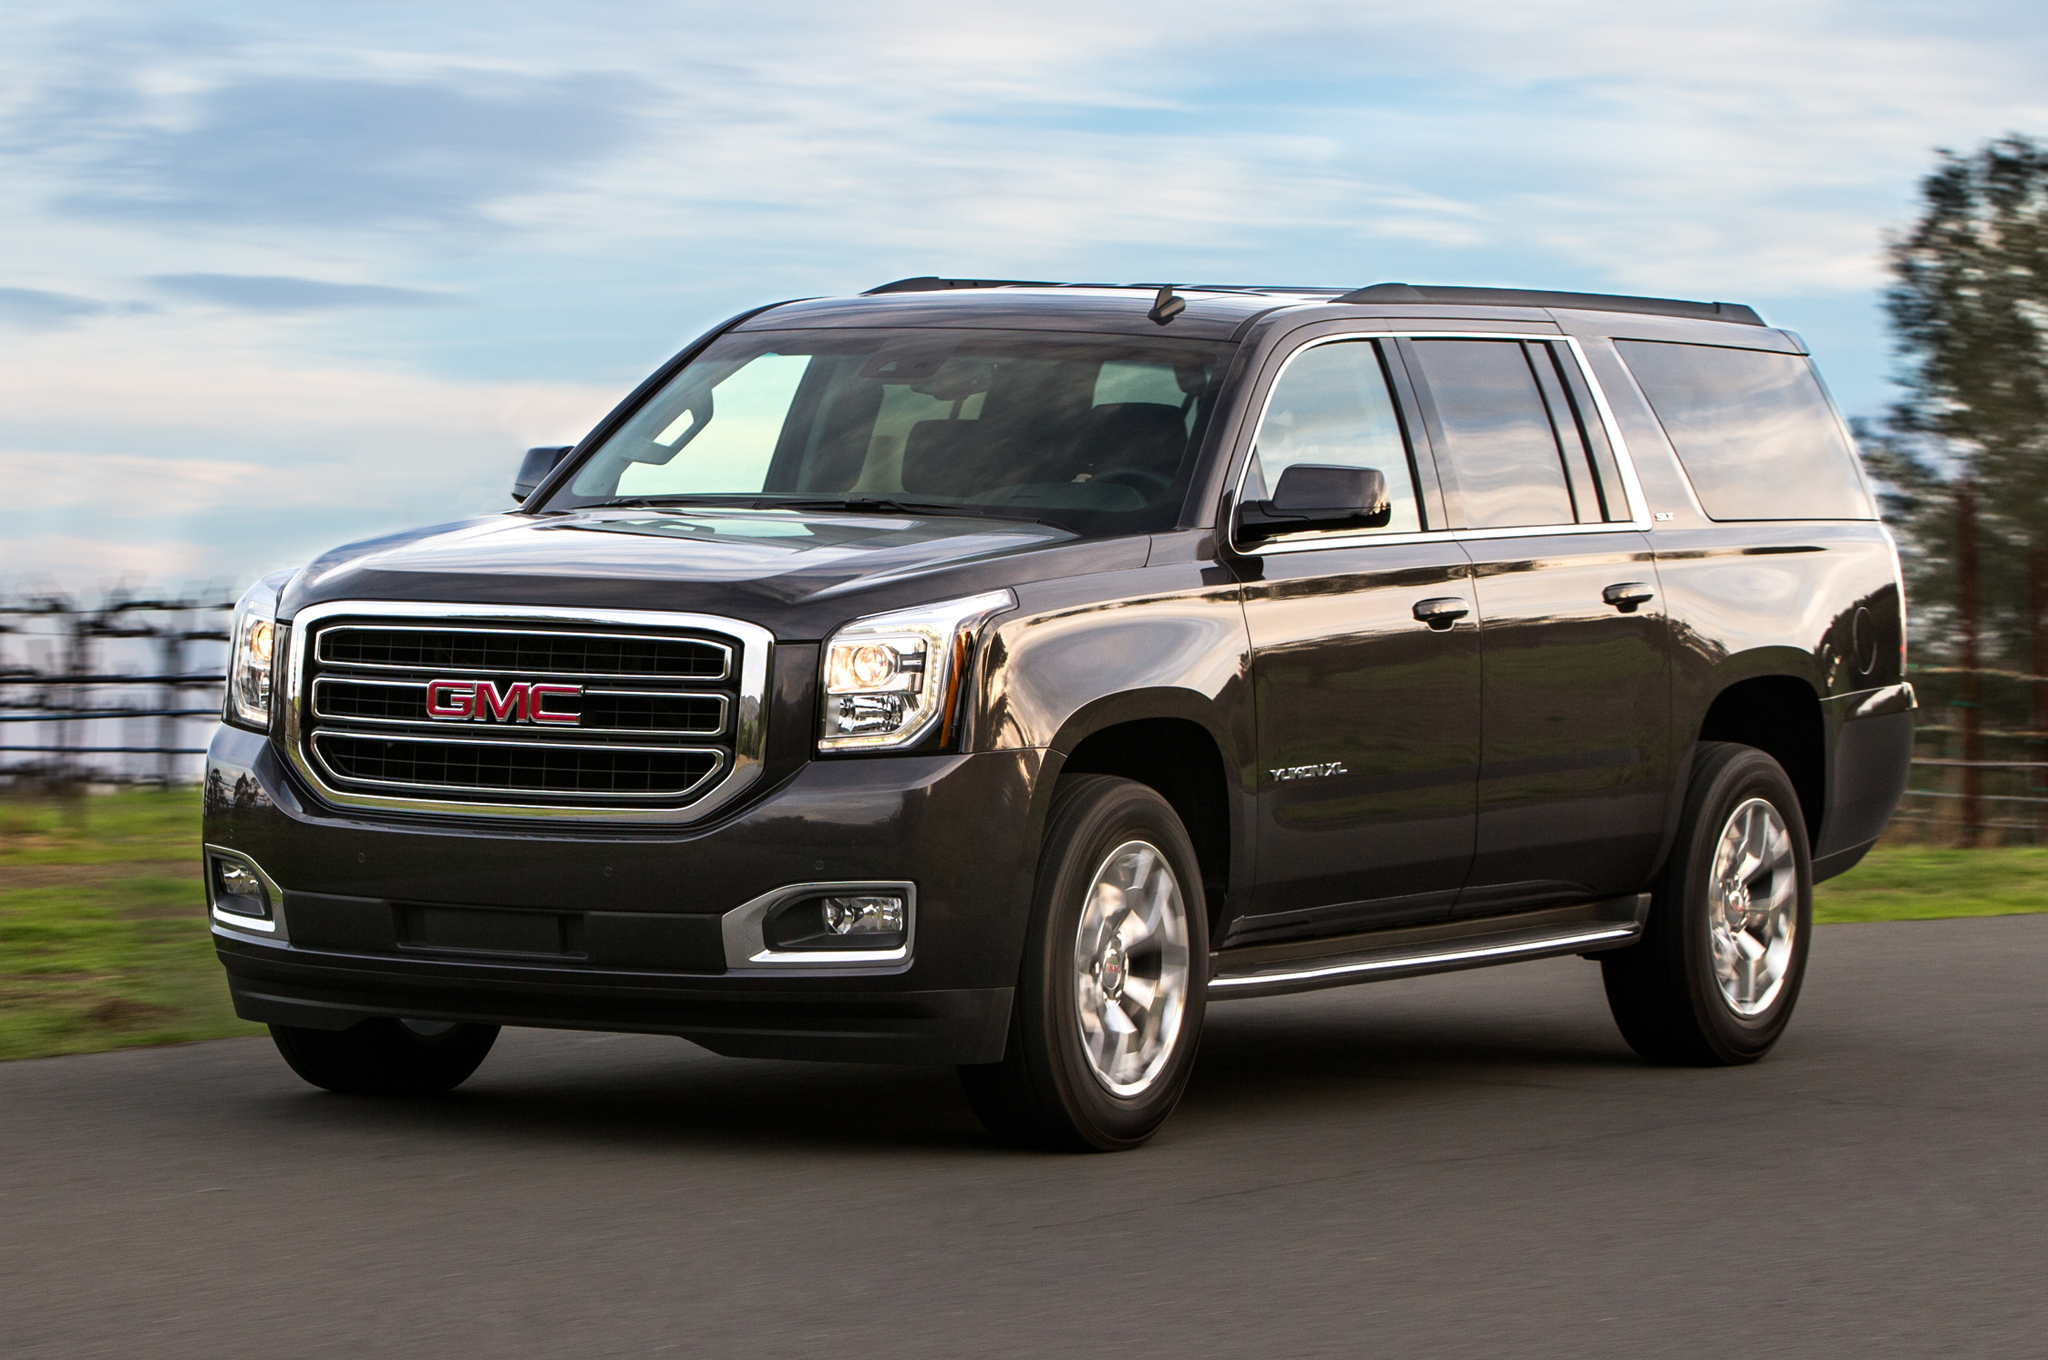 Featured Image of 2015 GMC Yukon XL